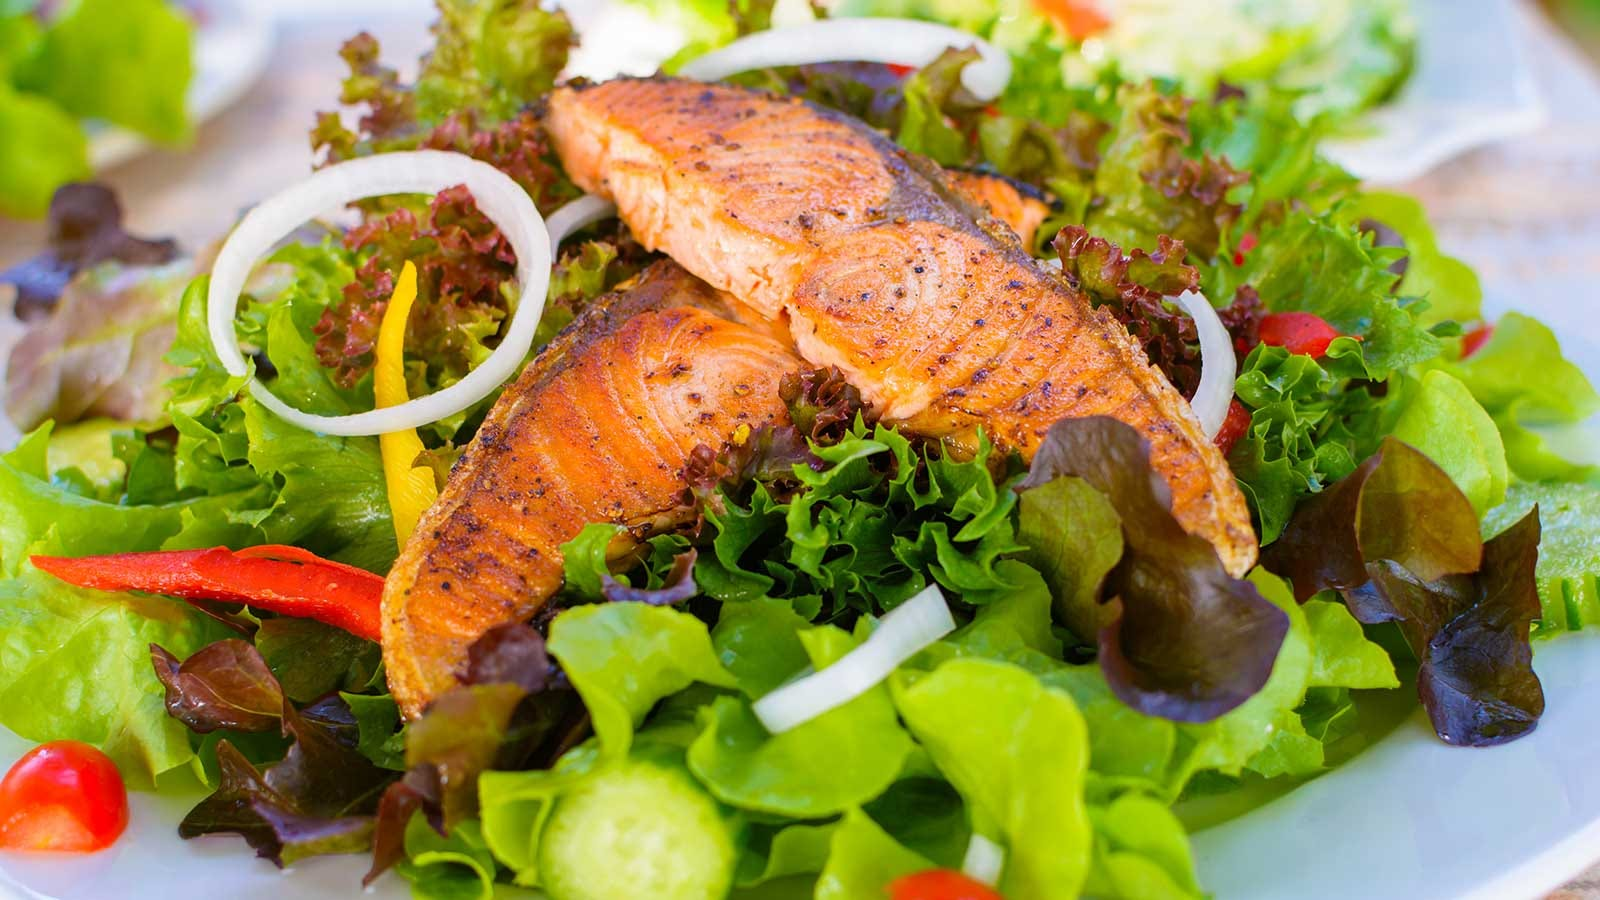 A colorful salad topped with grilled salmon.